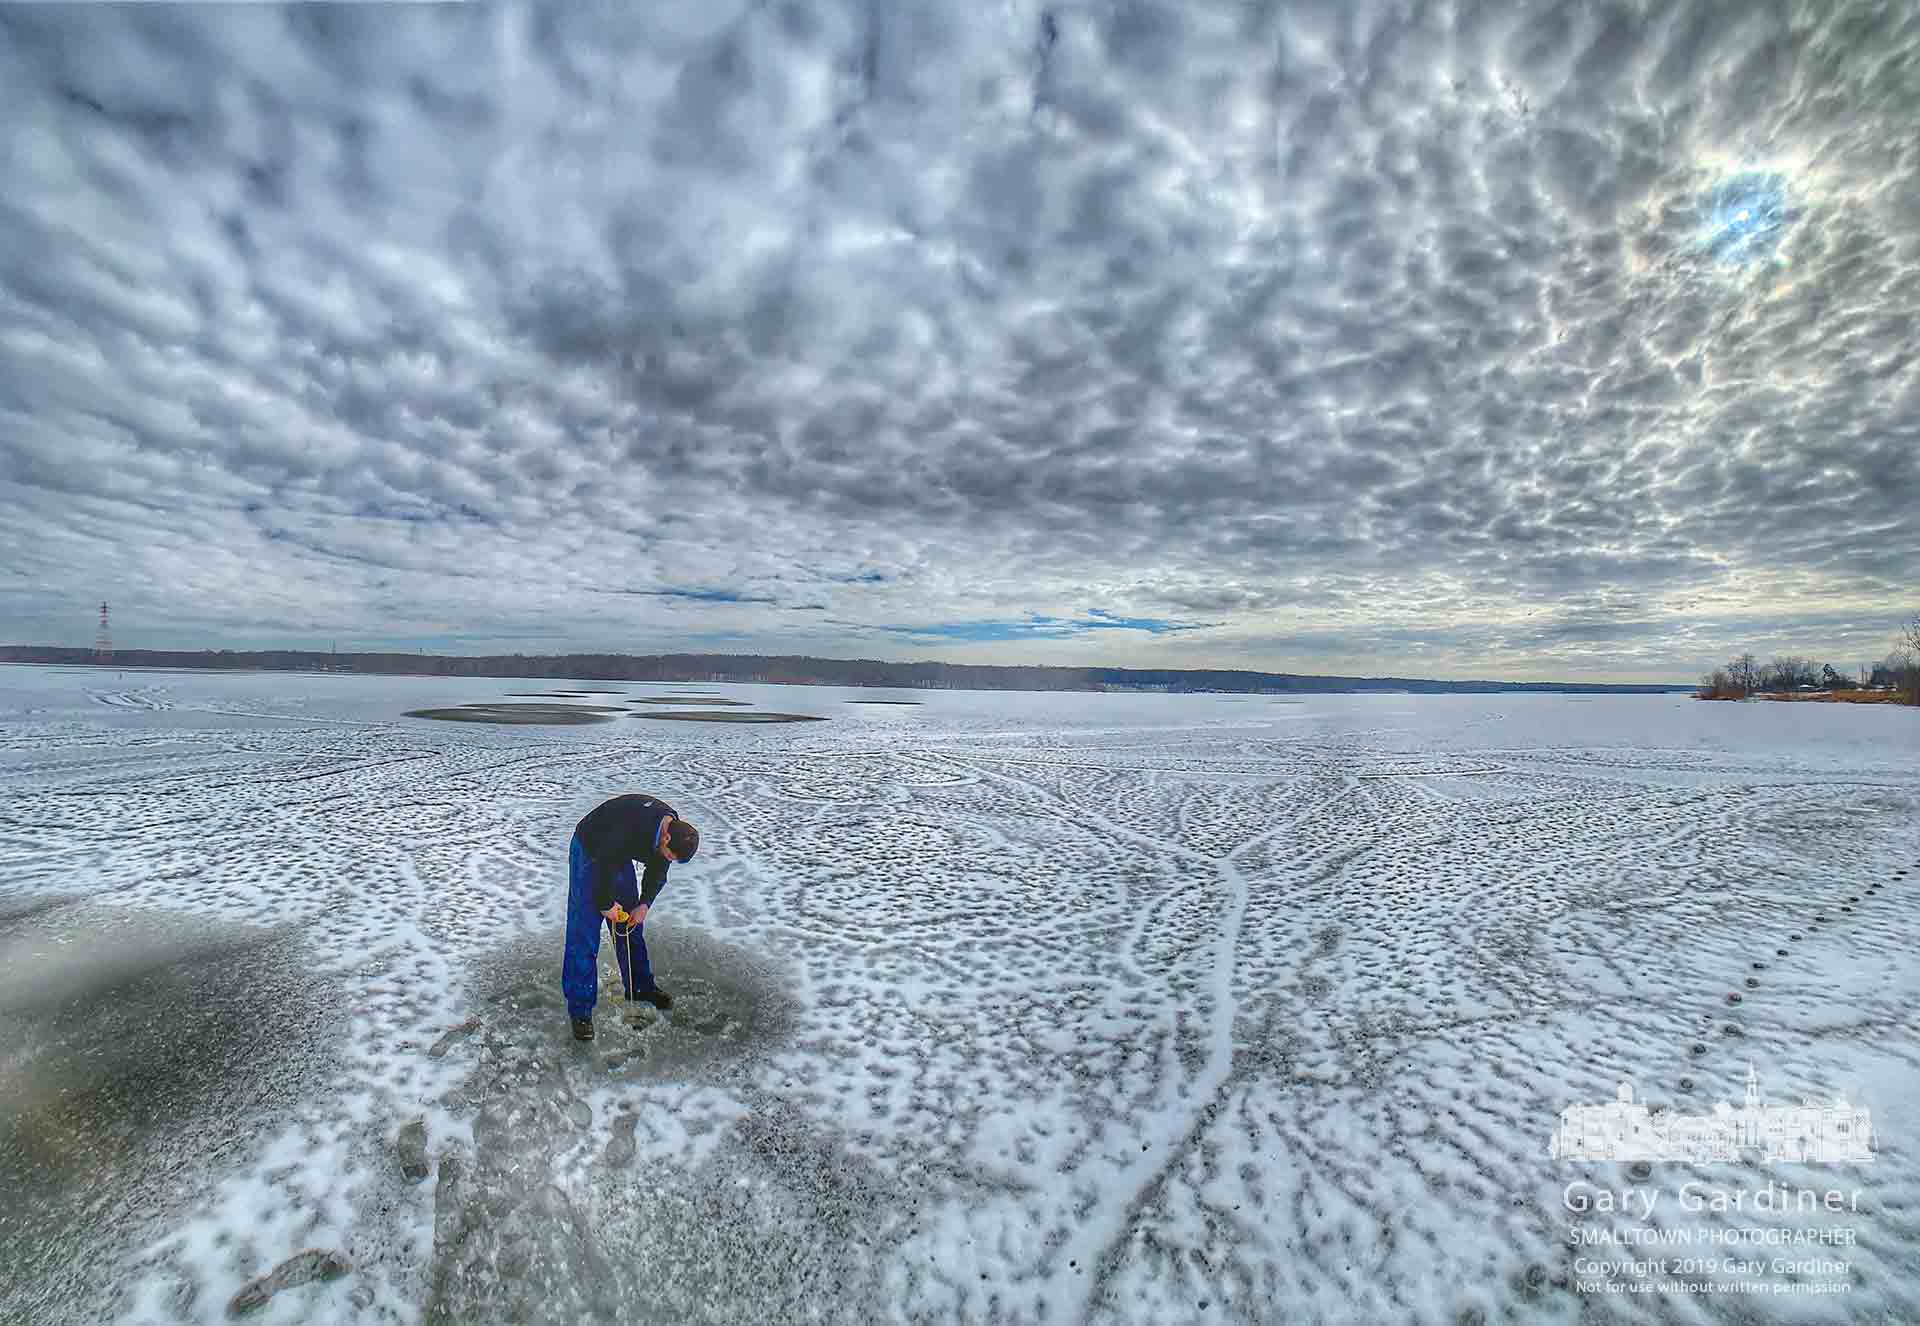 A man drops a super magnet through a hole he punched in the ice at Hoover hoping to retrieve a magnet he lost in an earlier attempt at magnet fishing off the Walnut boat ramp. My Final Photo for Feb. 3, 2019.